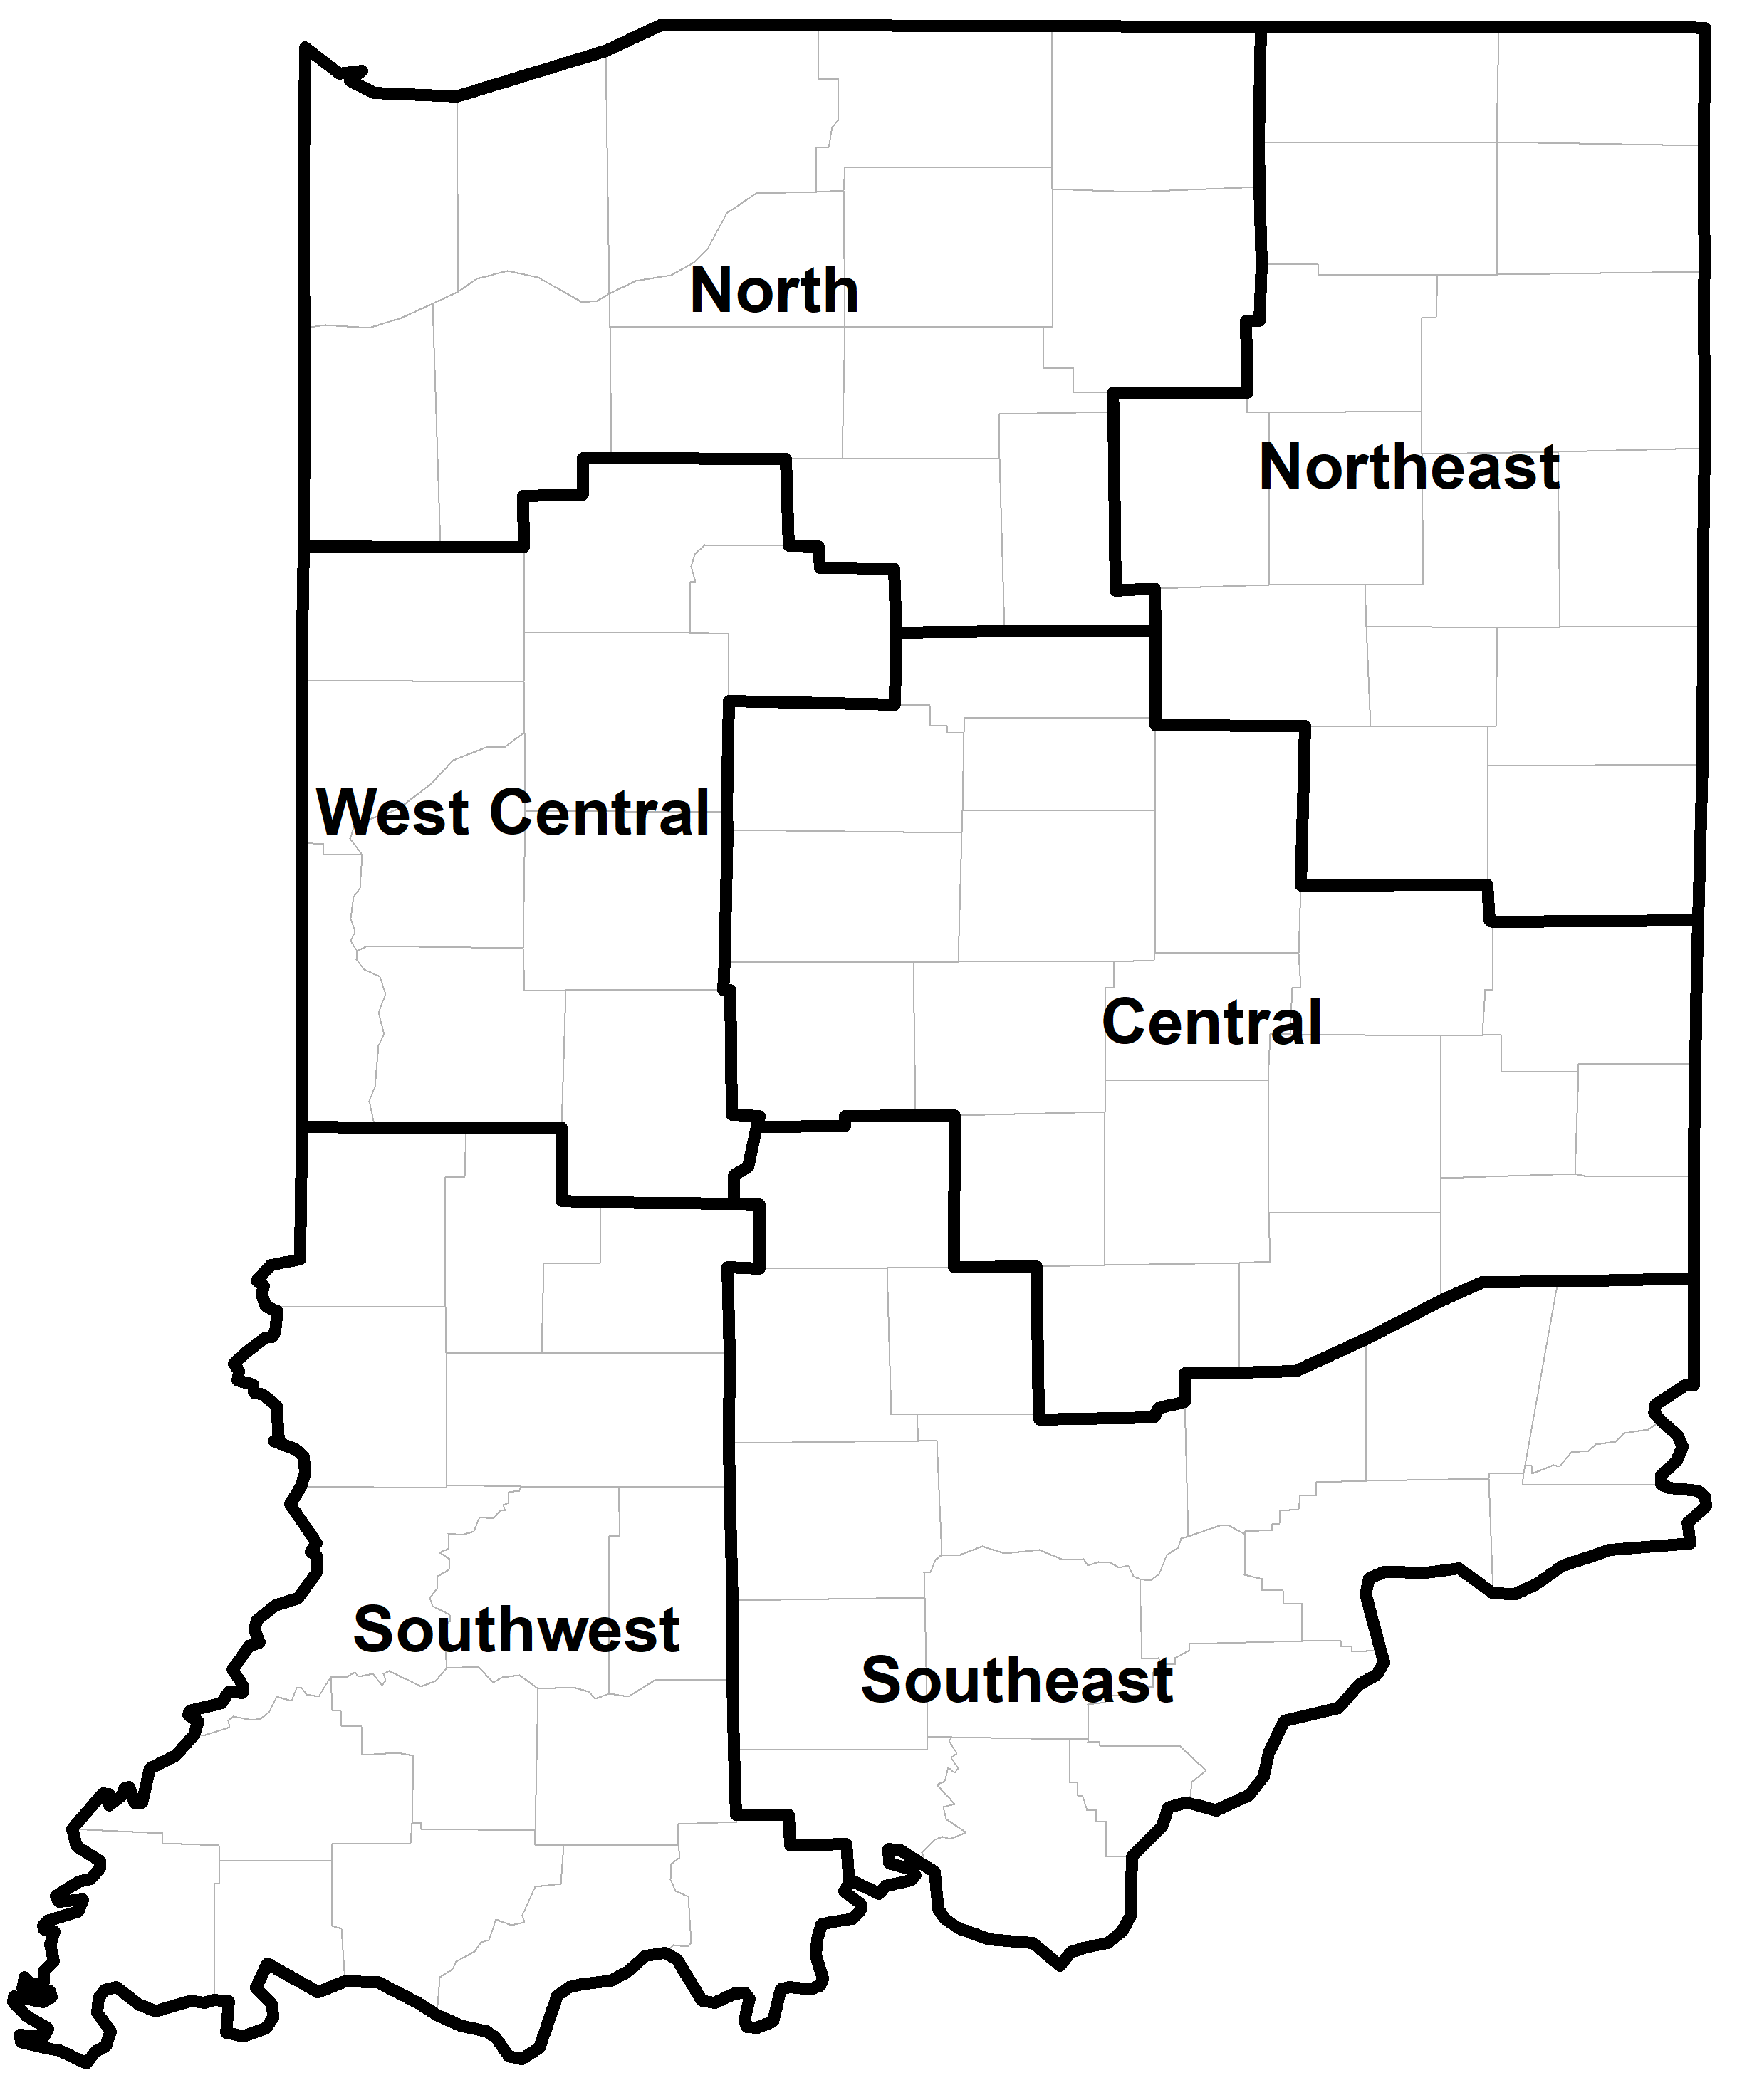 Figure 3: County Clusters used in the Purdue Land Values and Cash Rent Survey to create regions